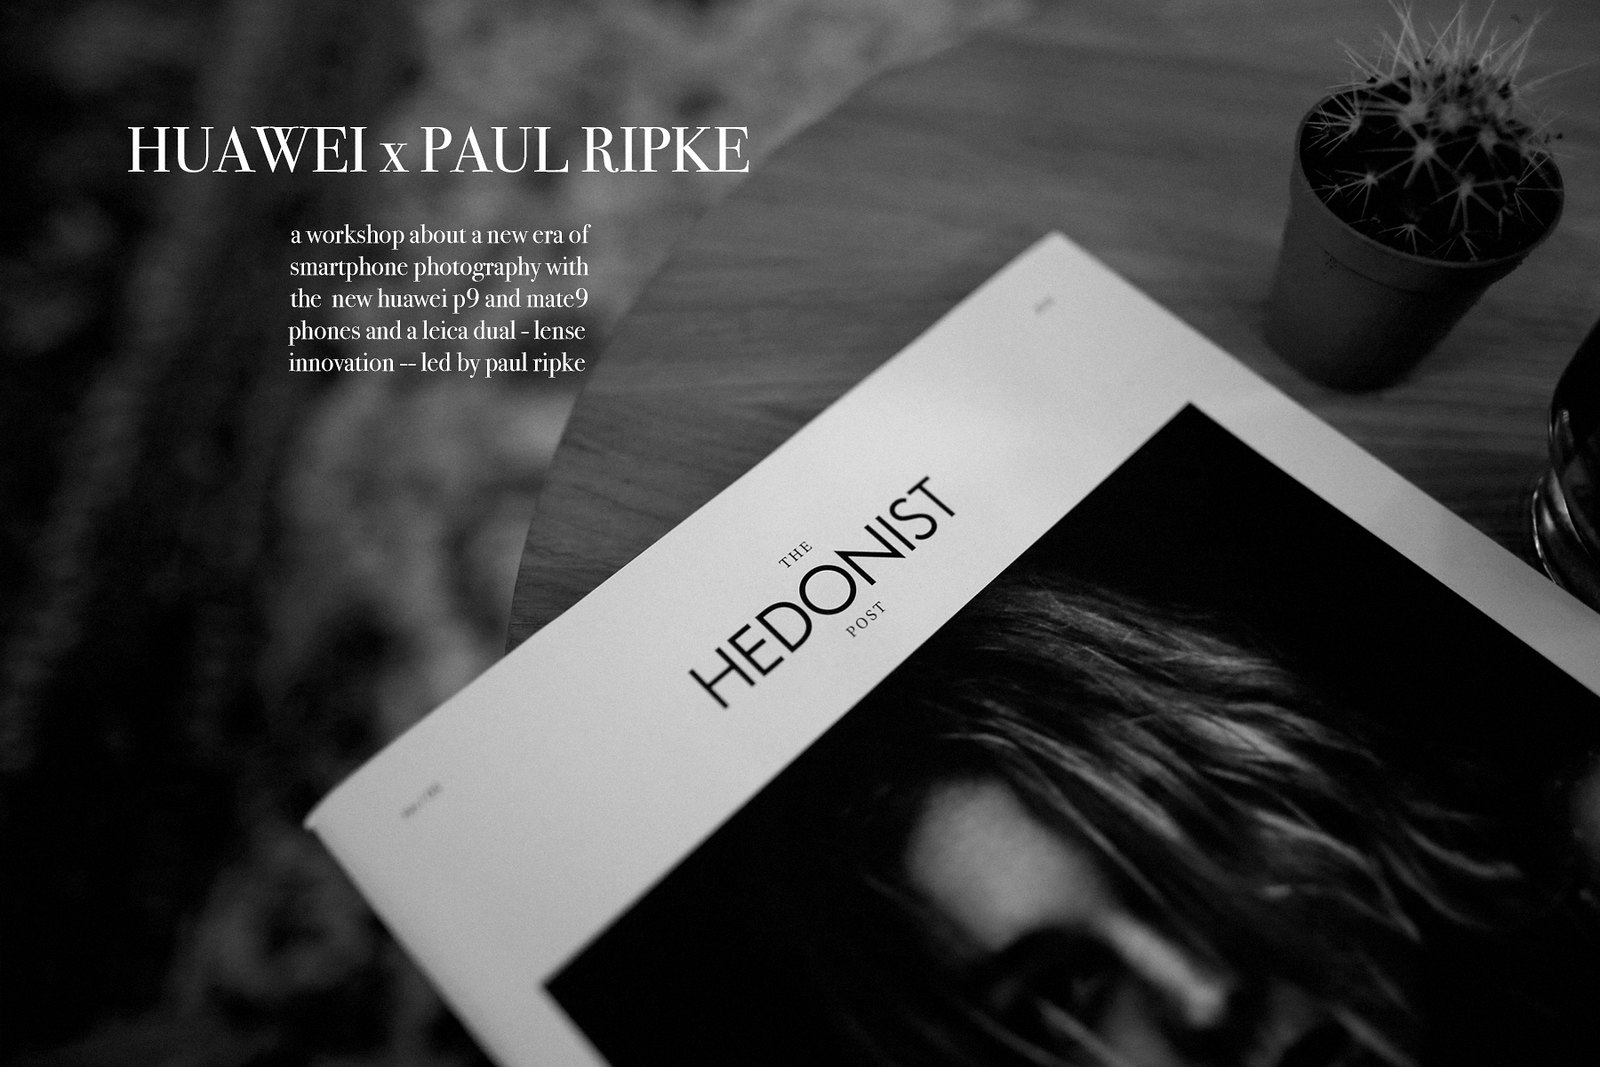 paul ripke fotografie workshop huawei p9 mate9 smartphone photographer leica lense hedonist magazine marteria nico rossberg fotograf photography lifestyle minimal j.w.anderson luxury fashionblogger berlin kreuzberg ricarda schernus modeblog cats & dogs 7